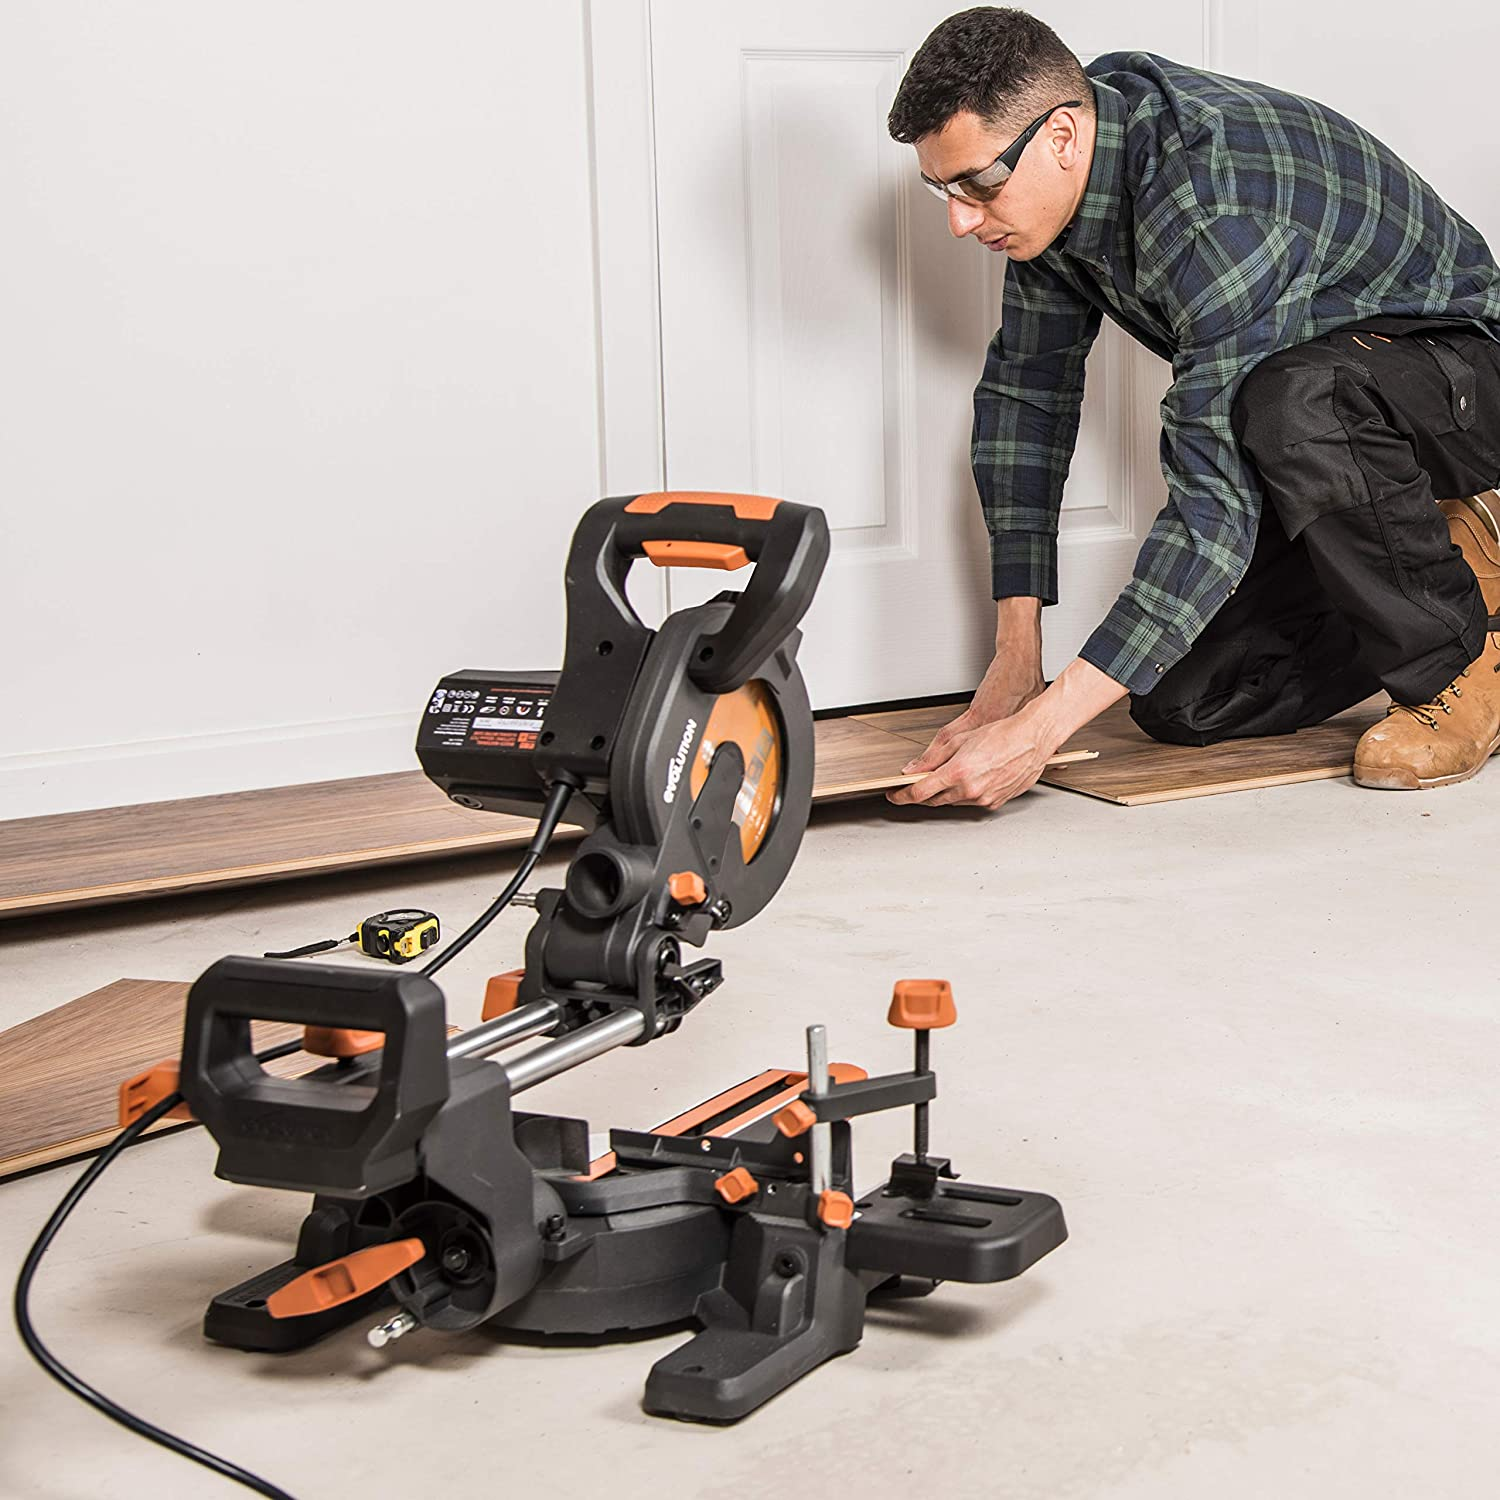 Evolution Power Tools Multi-Material Compound Sliding Miter Saw  review